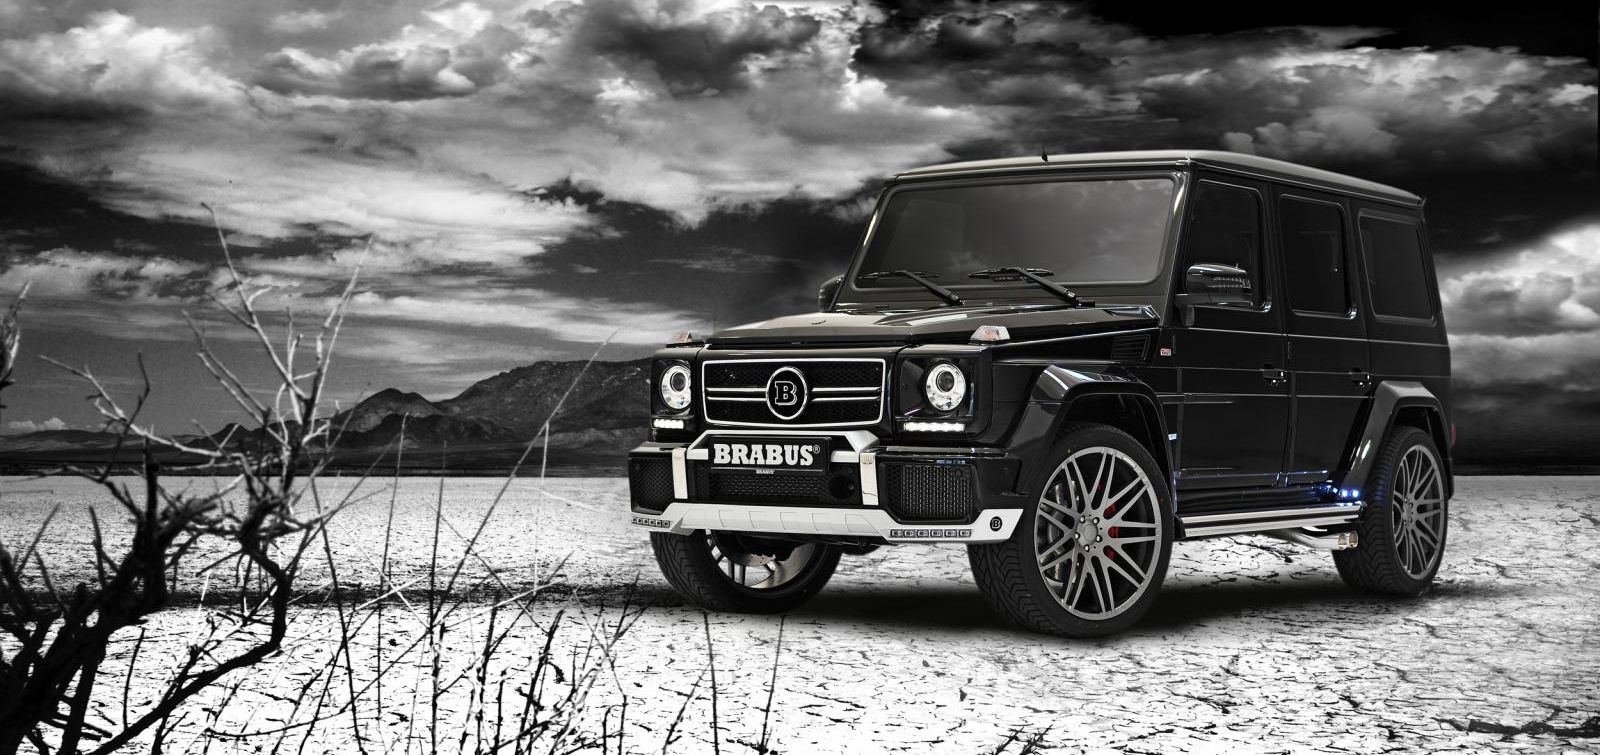 brabus  Only cars and cars